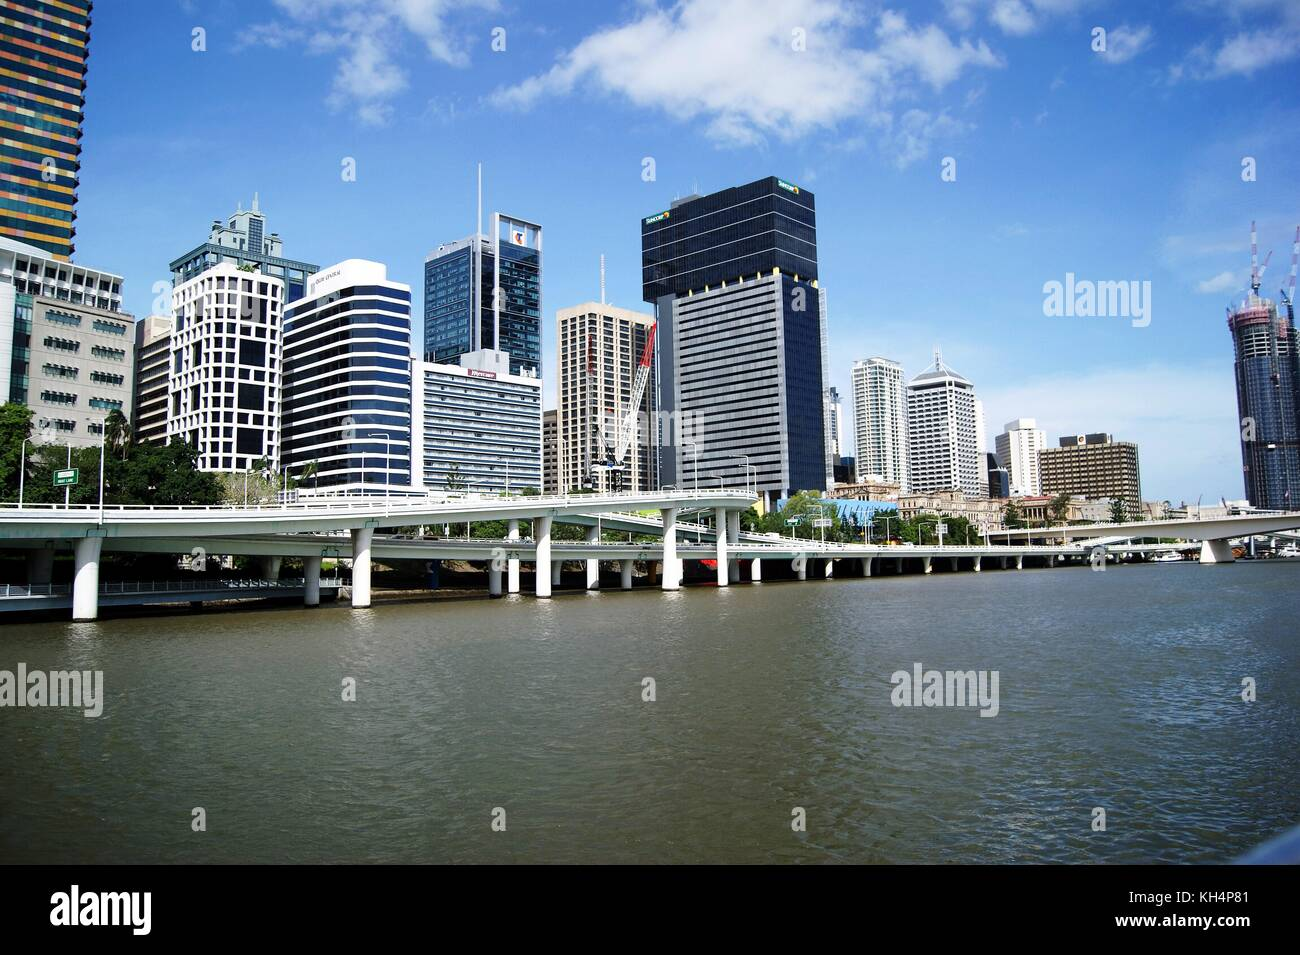 The centre of Brisbane and its River, Australia - Stock Image